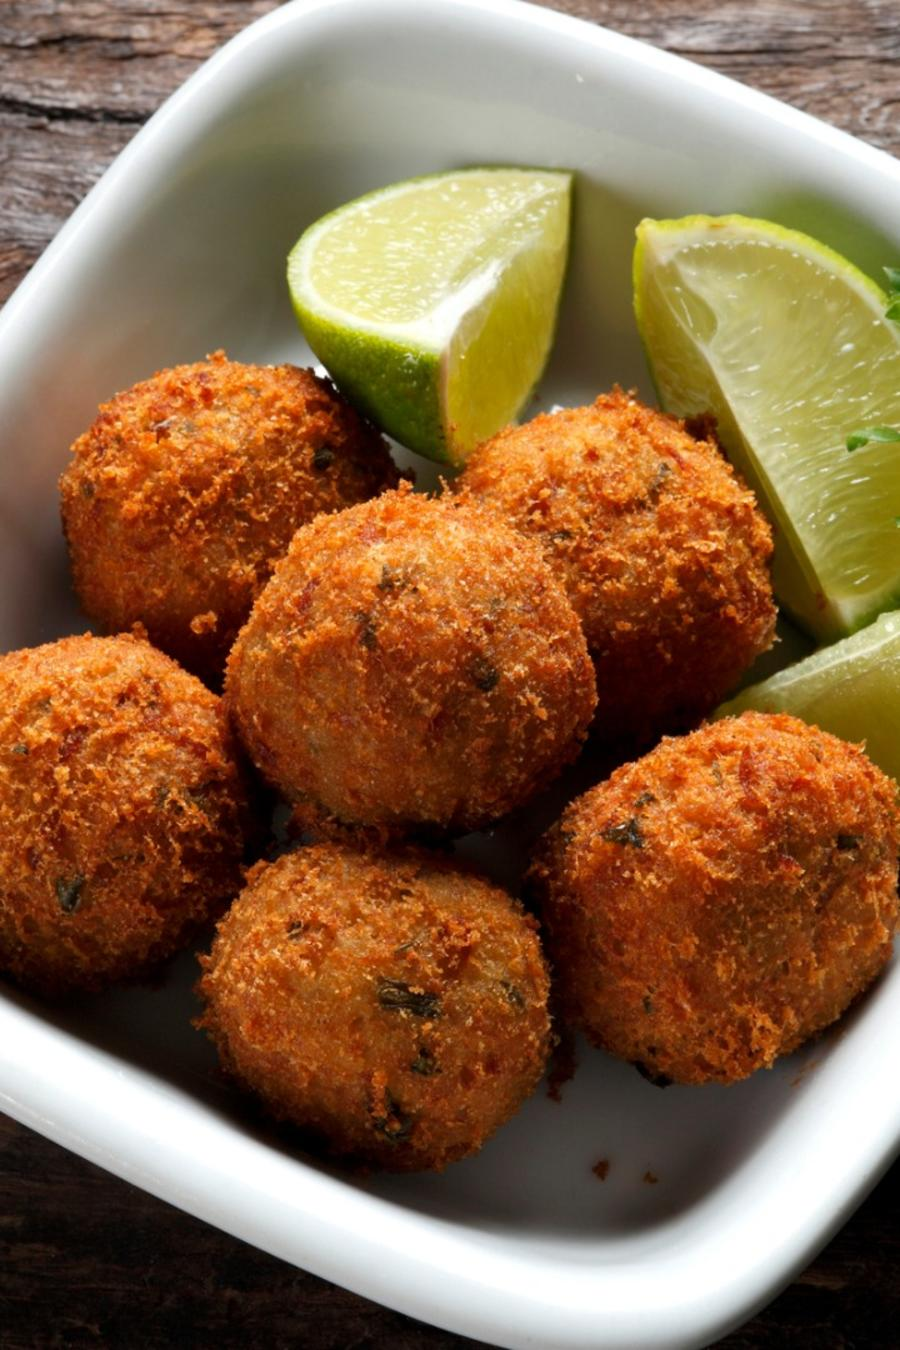 Croquetas with lime on a plate.